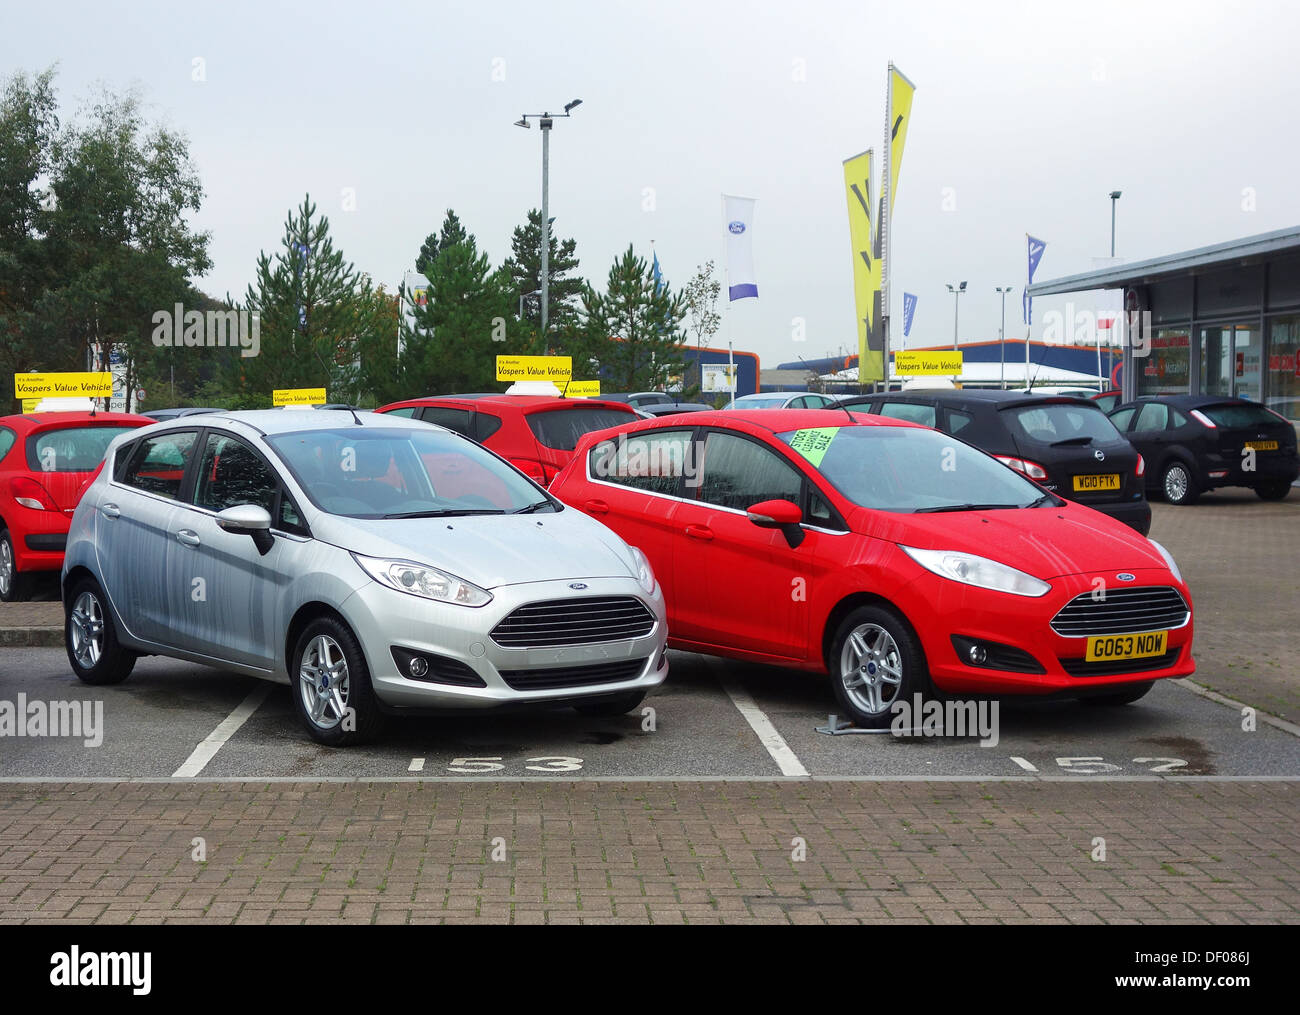 Cars For Sale Stock Photos  Cars For Sale Stock Images  Alamy